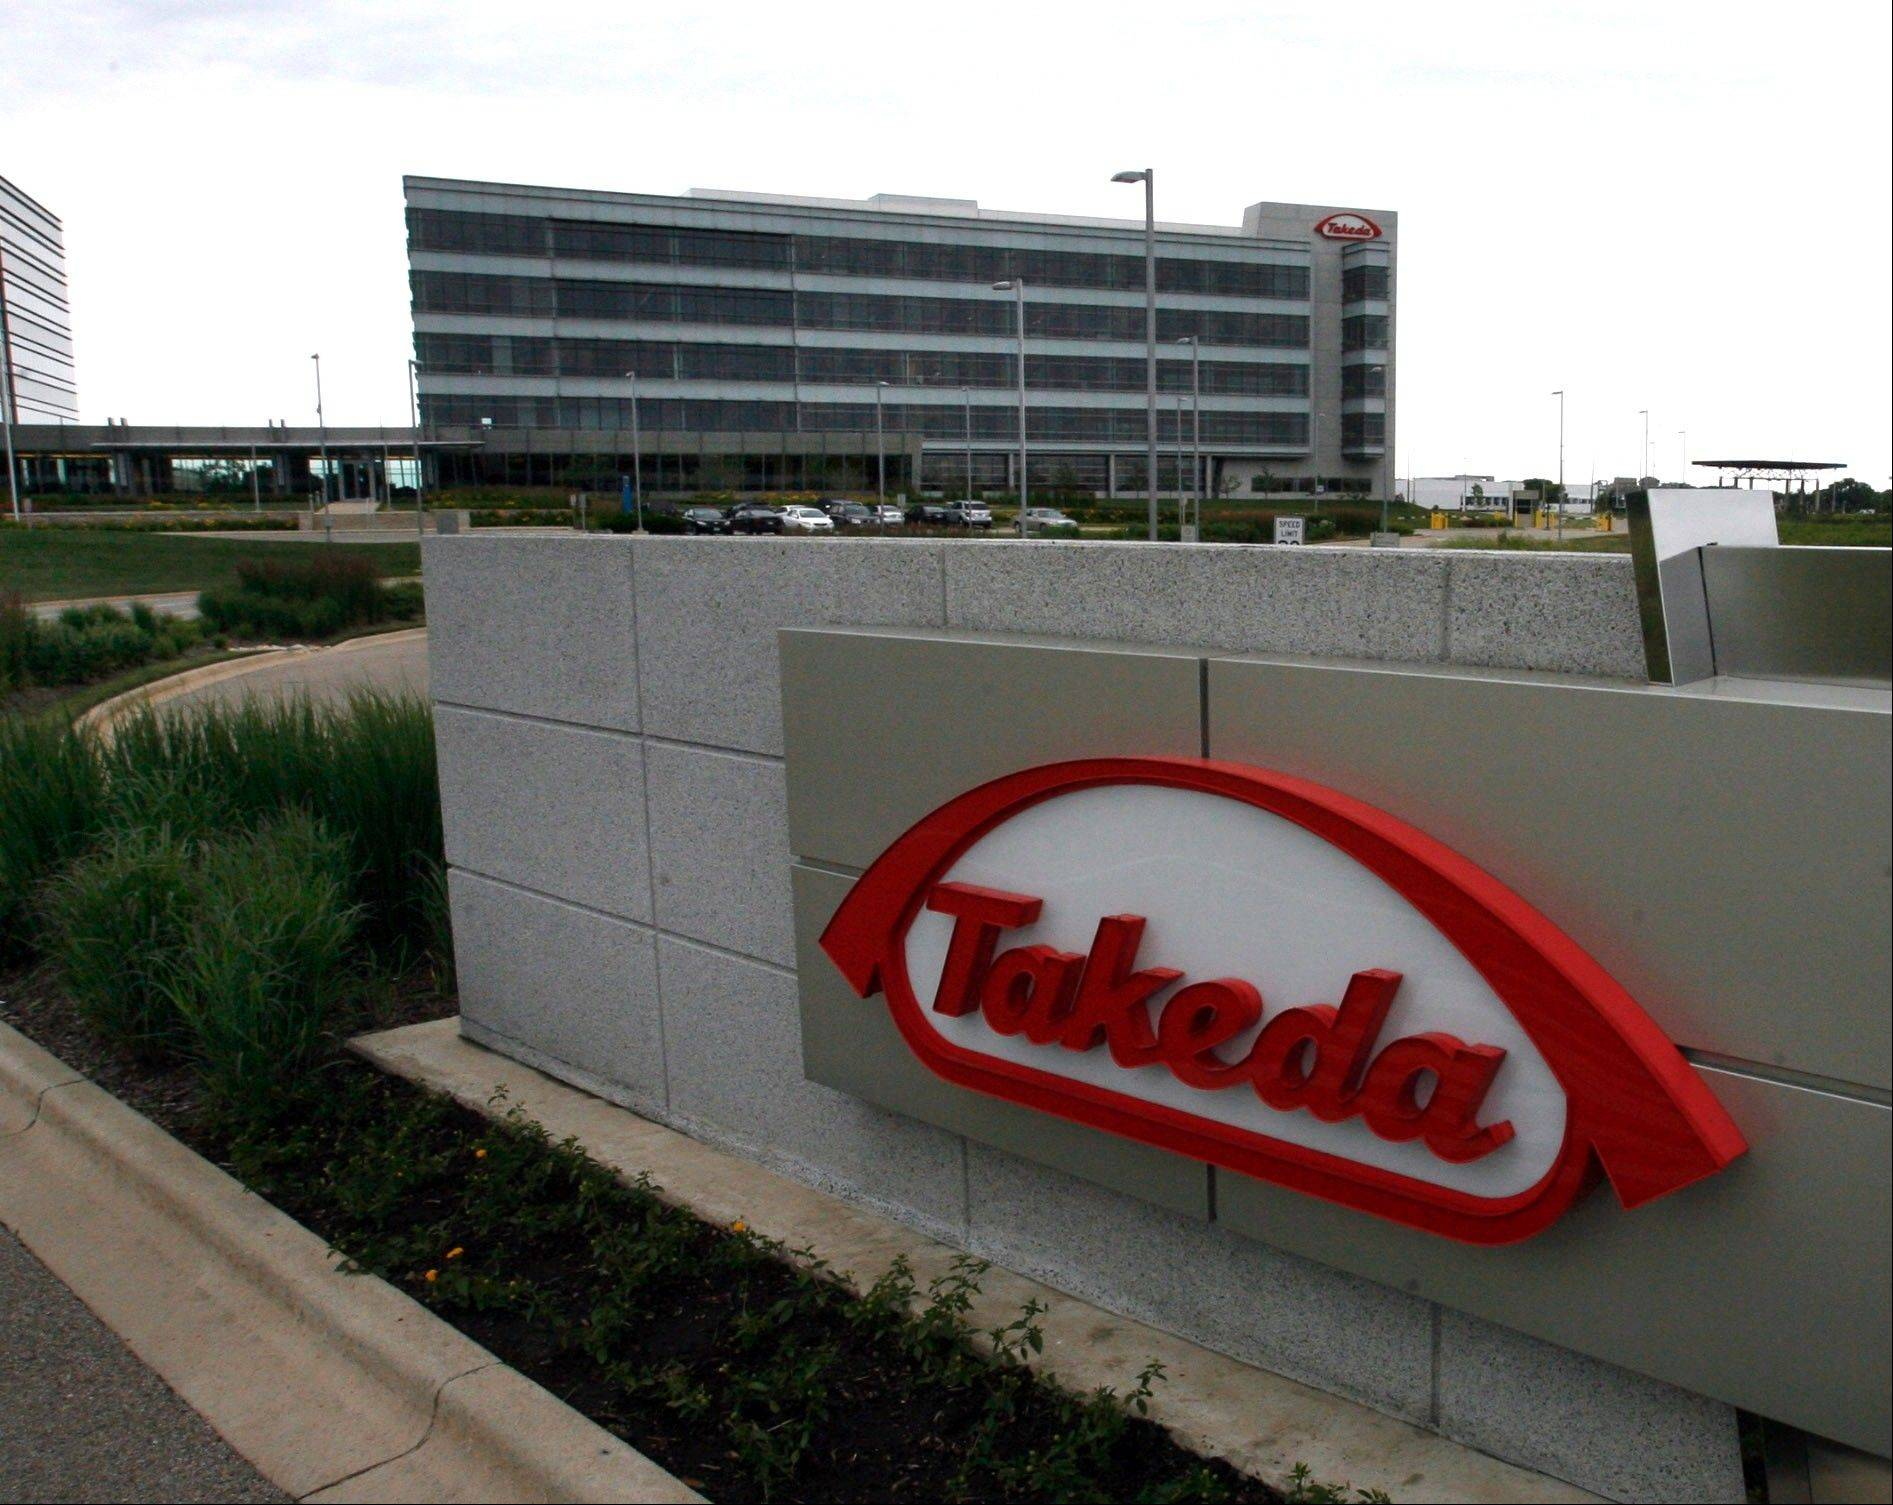 Takeda's Deerfield facilities.